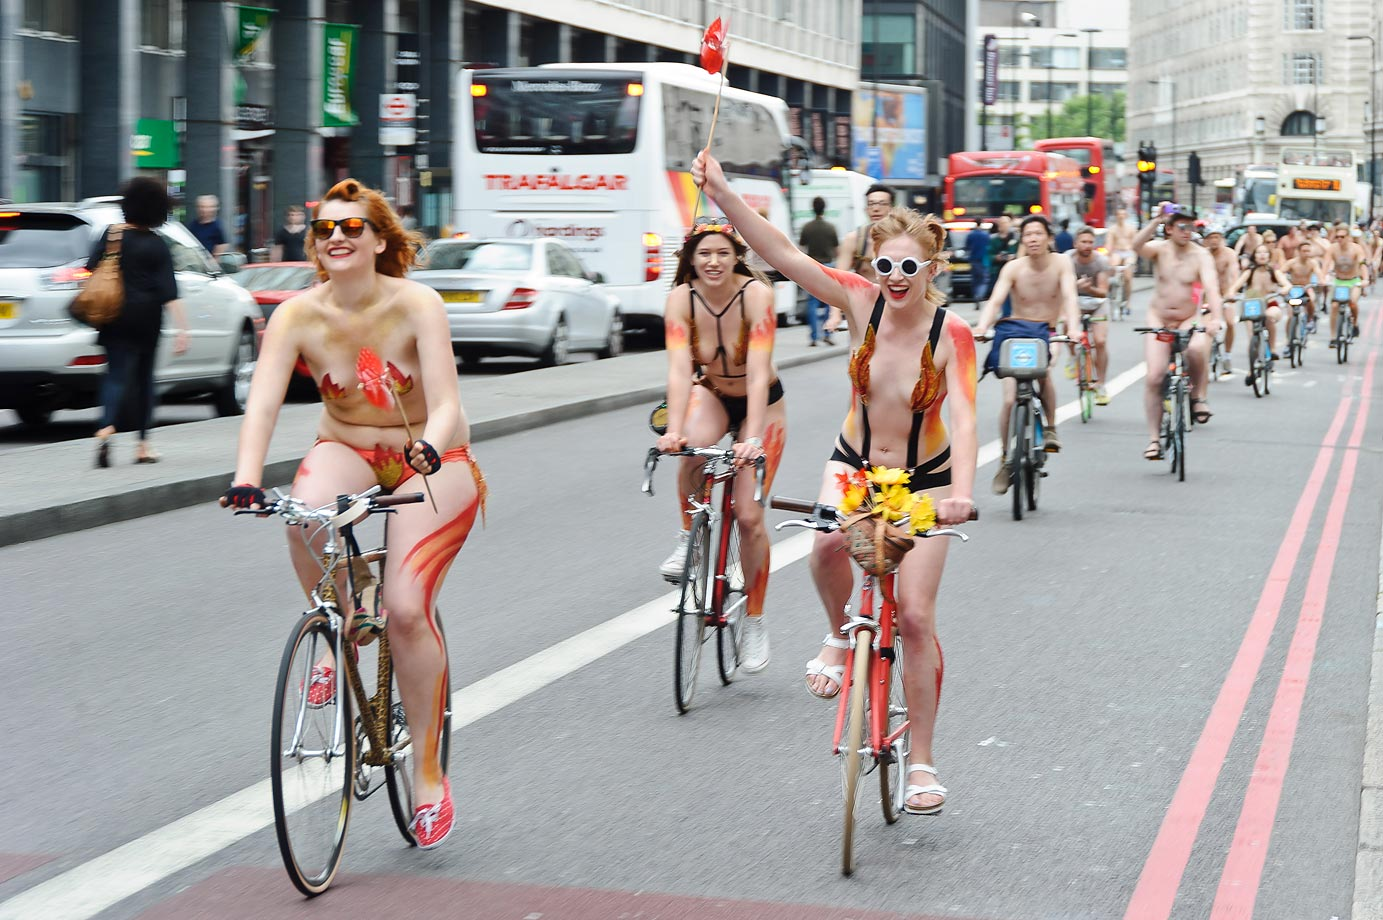 The annual London World Naked Bike Ride event in London is an au natural for some folks.